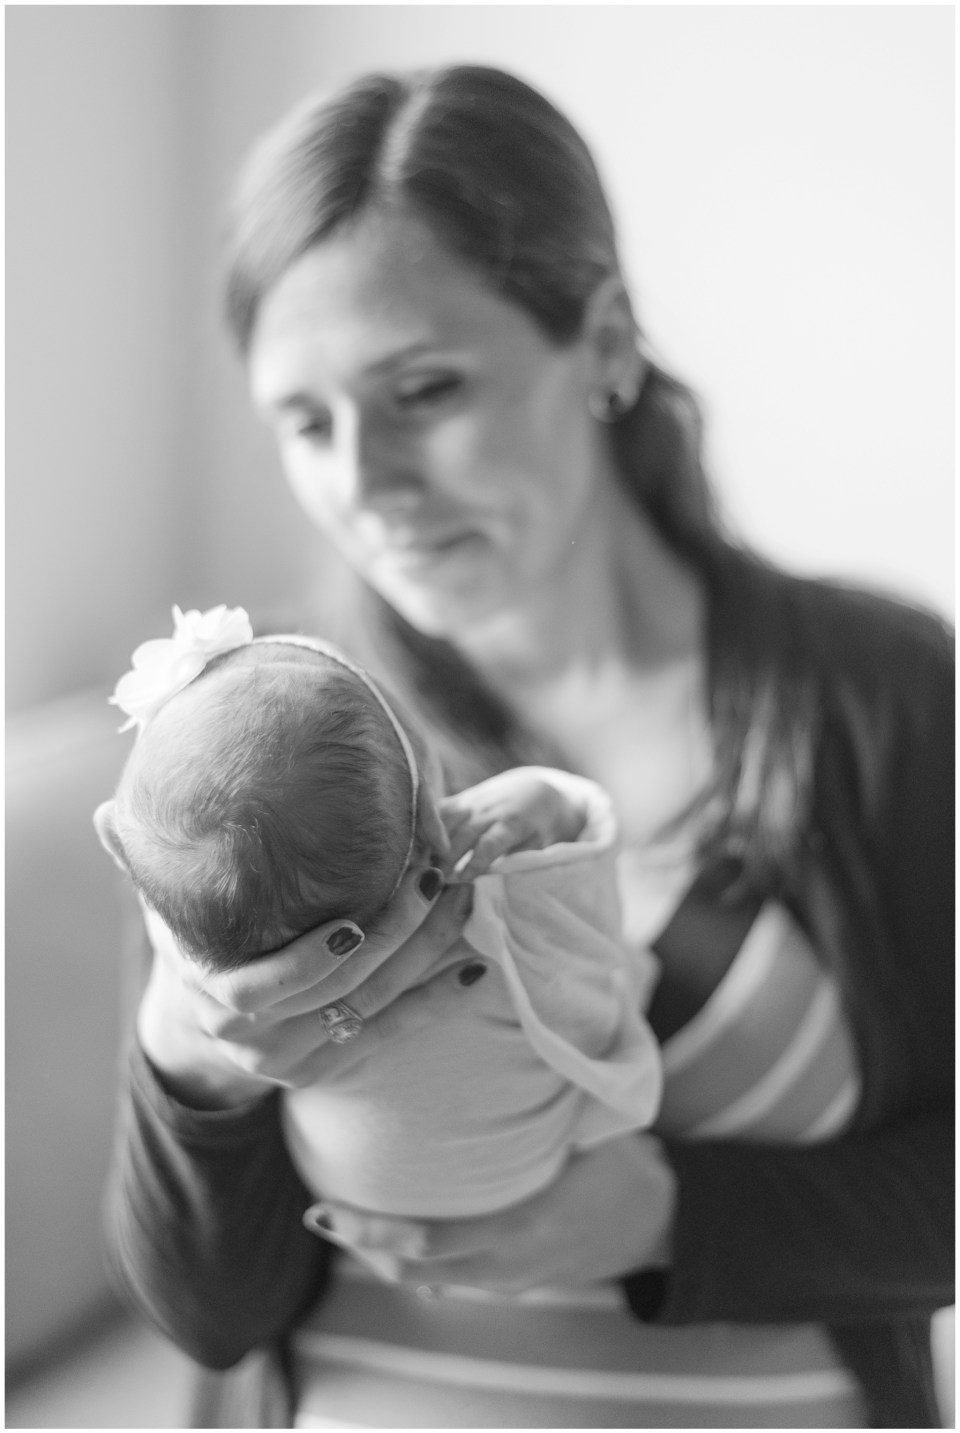 Kingwood family photographer images from an at-home newborn session with baby girl & her big sister